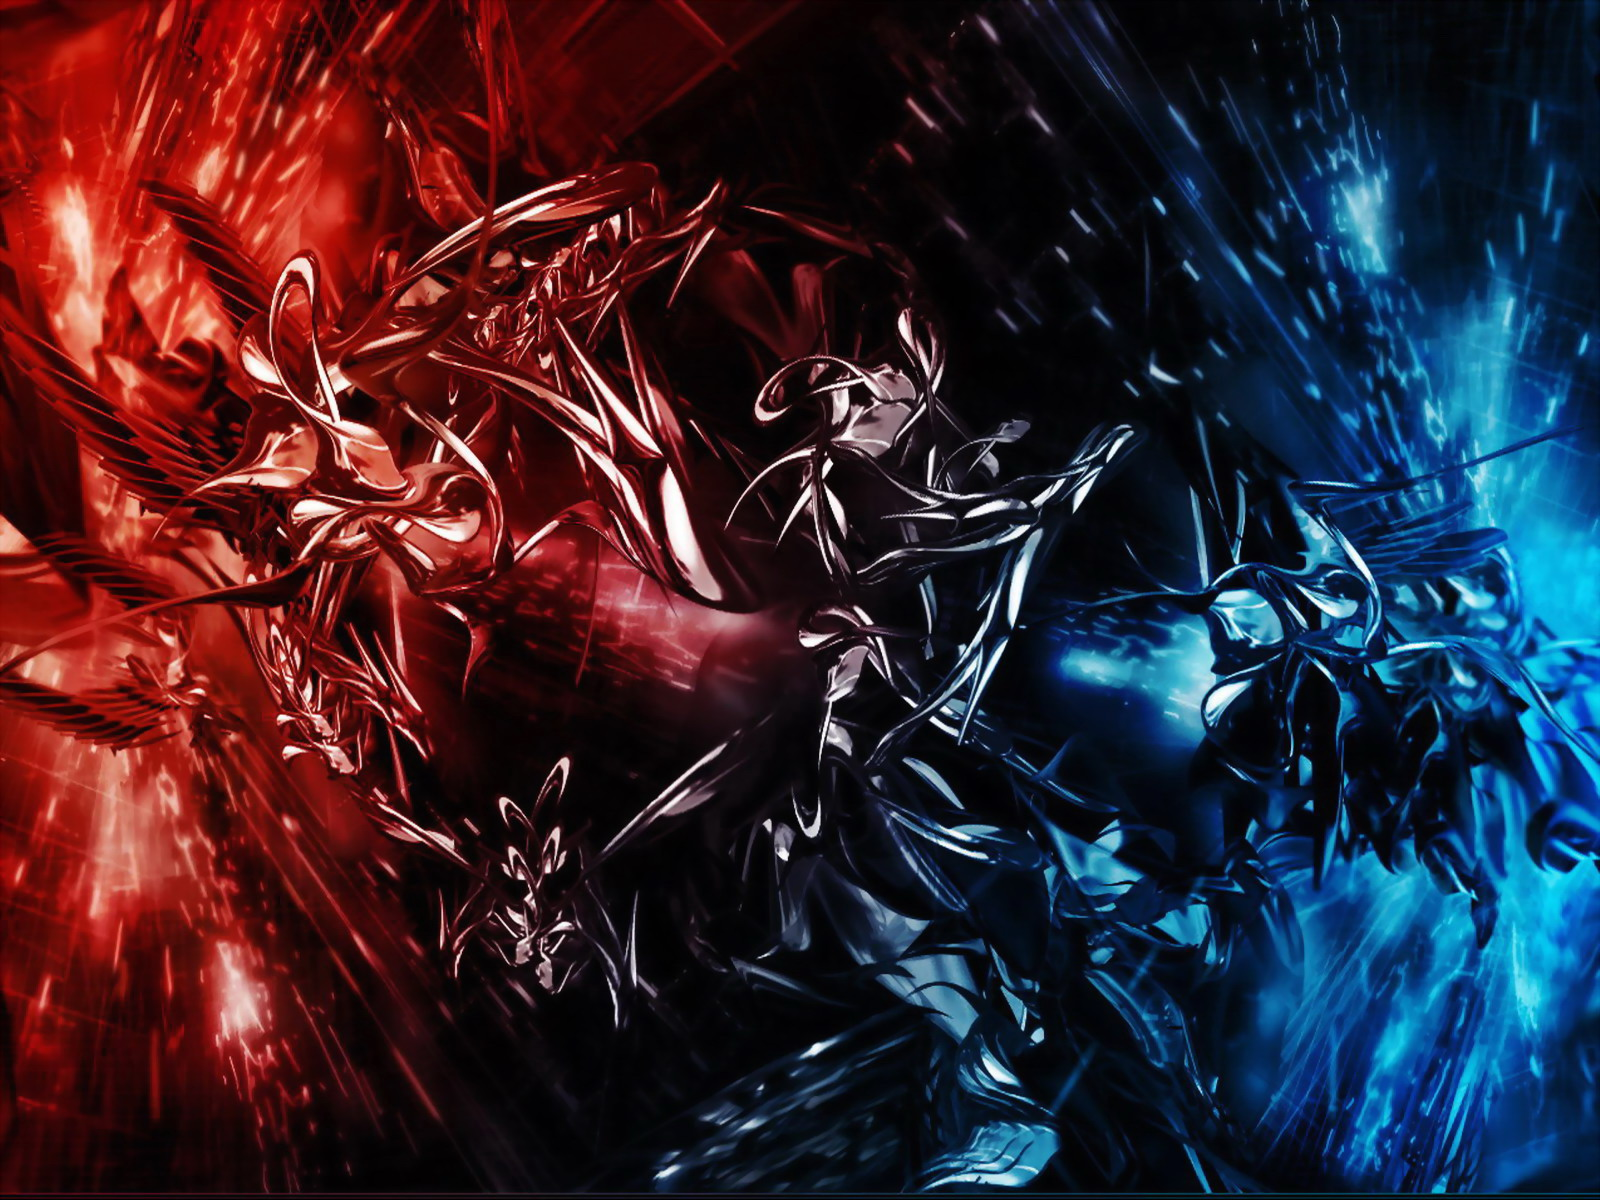 Free Colorful Dark 3d Abstract Wallpaper Downloads Wallpaper